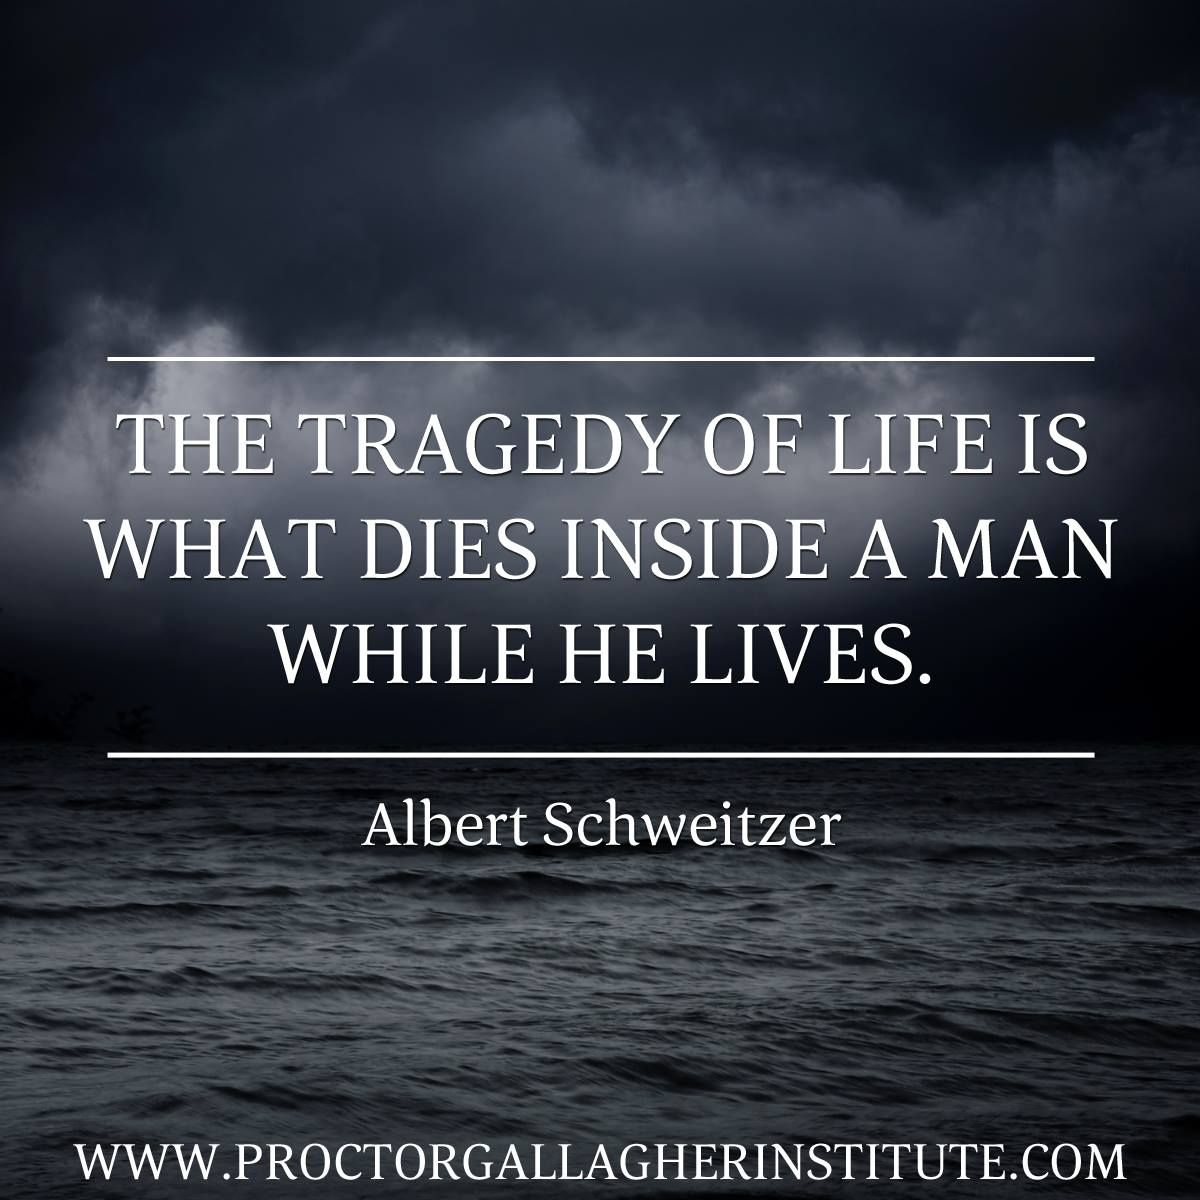 Life Wise Quotes The Tragedy Of Life Is What Dies Inside A Man While He Lives